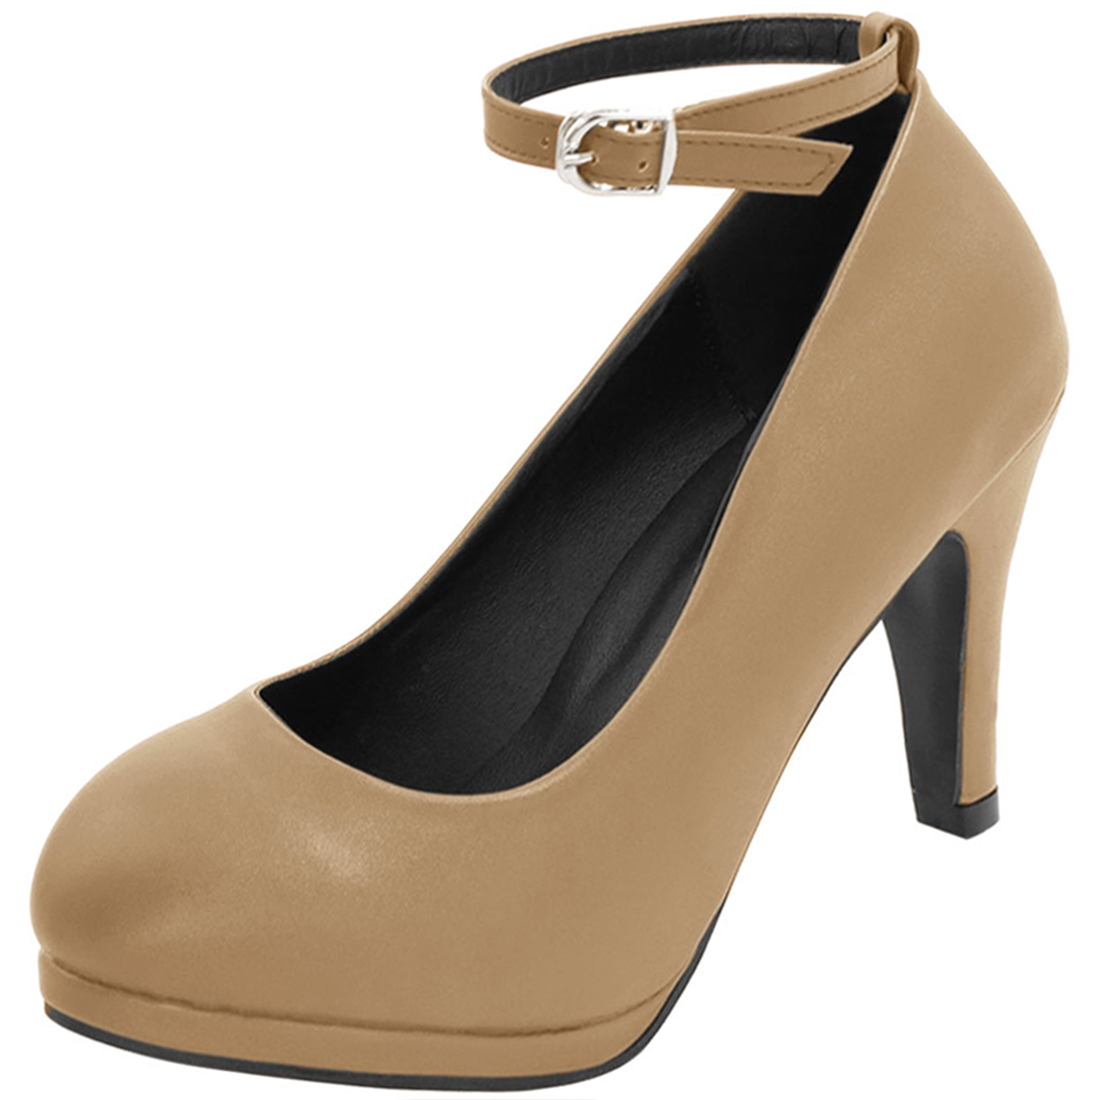 Woman Rounded Toe Mid Heel Length Ankle Strap Pumps Dark Beige US 9